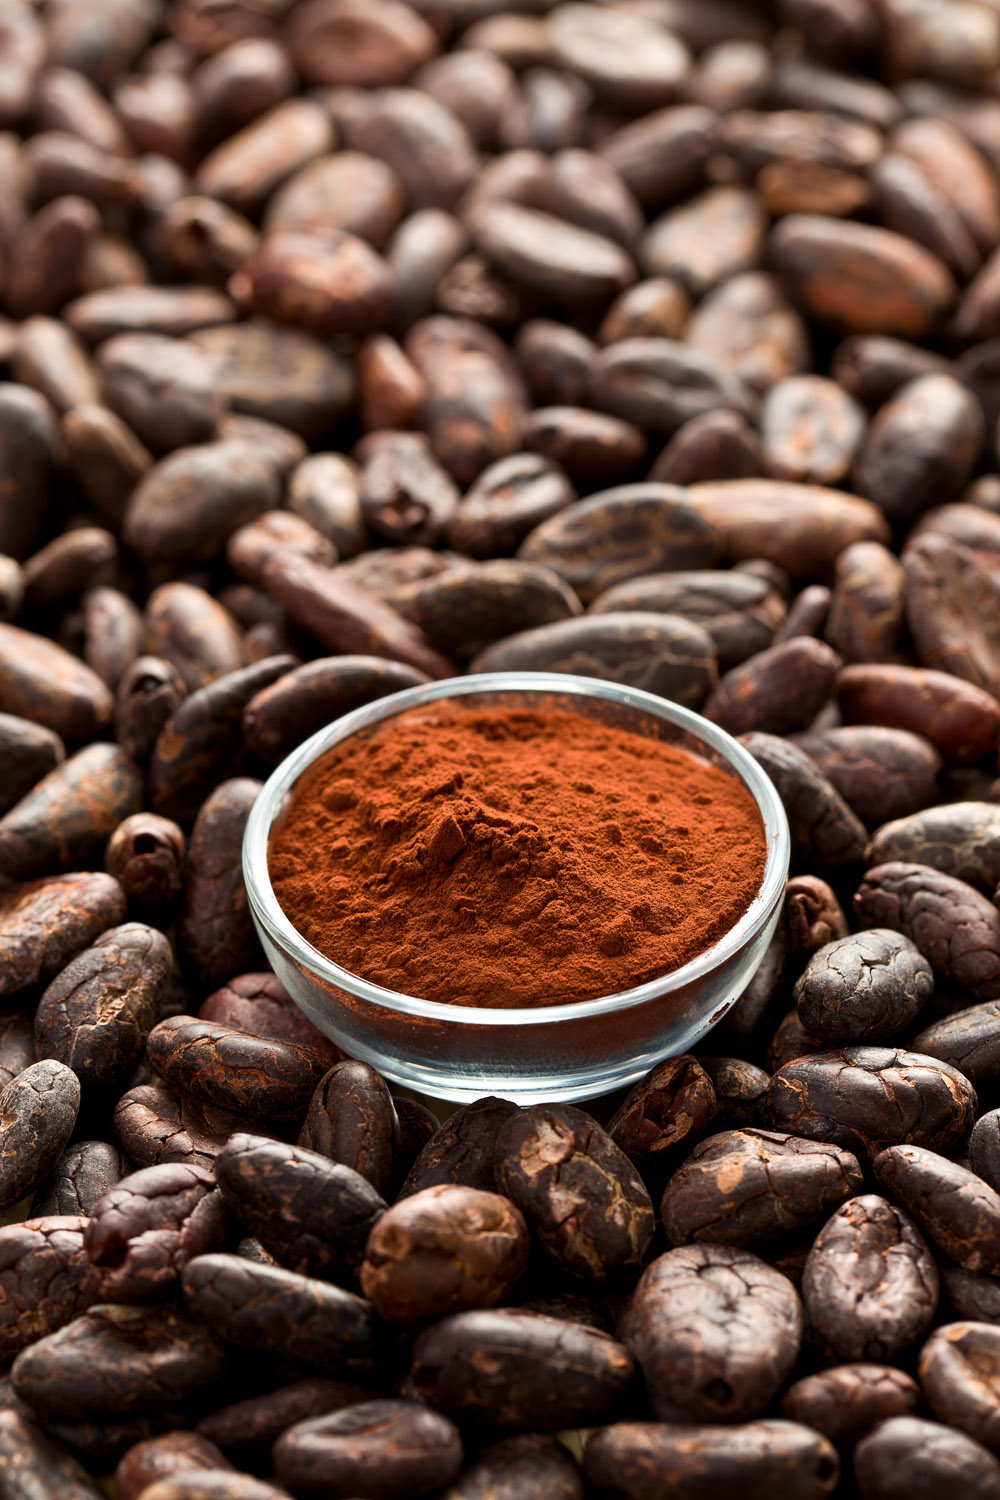 Cocoa bean polyphenol extract is well researched for it's circulation, antioxidant and collagen protecting properties